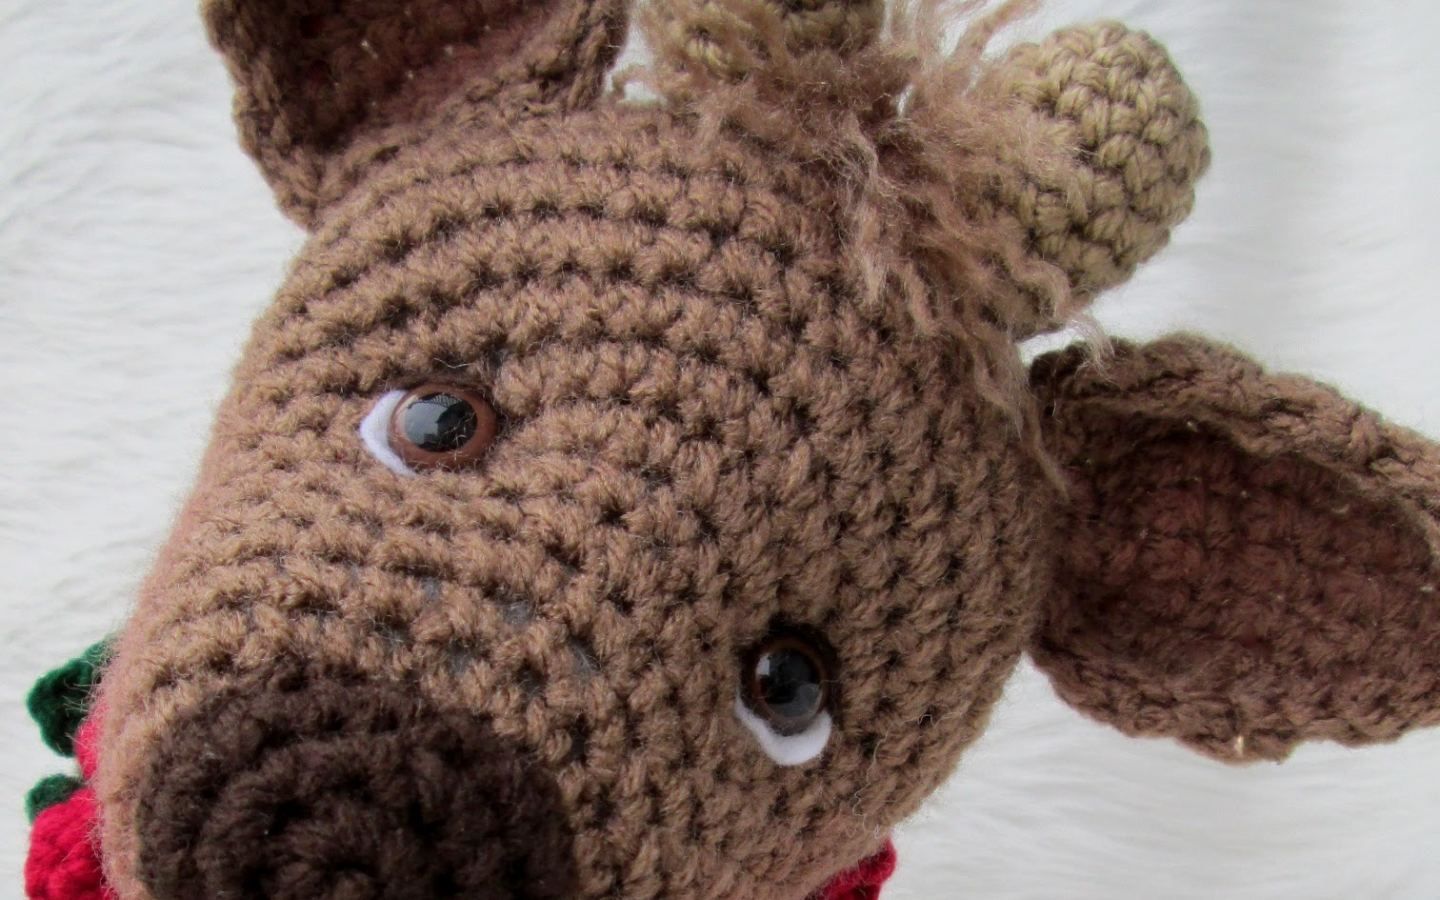 Free Download Wool And Whims New Crochet Pattern Simply Cute Reindeer 1512x1600 For Your Desktop Mobile Tablet Explore 40 Cute Reindeer Wallpaper Cute Reindeer Wallpaper Reindeer Wallpaper Christmas Reindeer Wallpaper